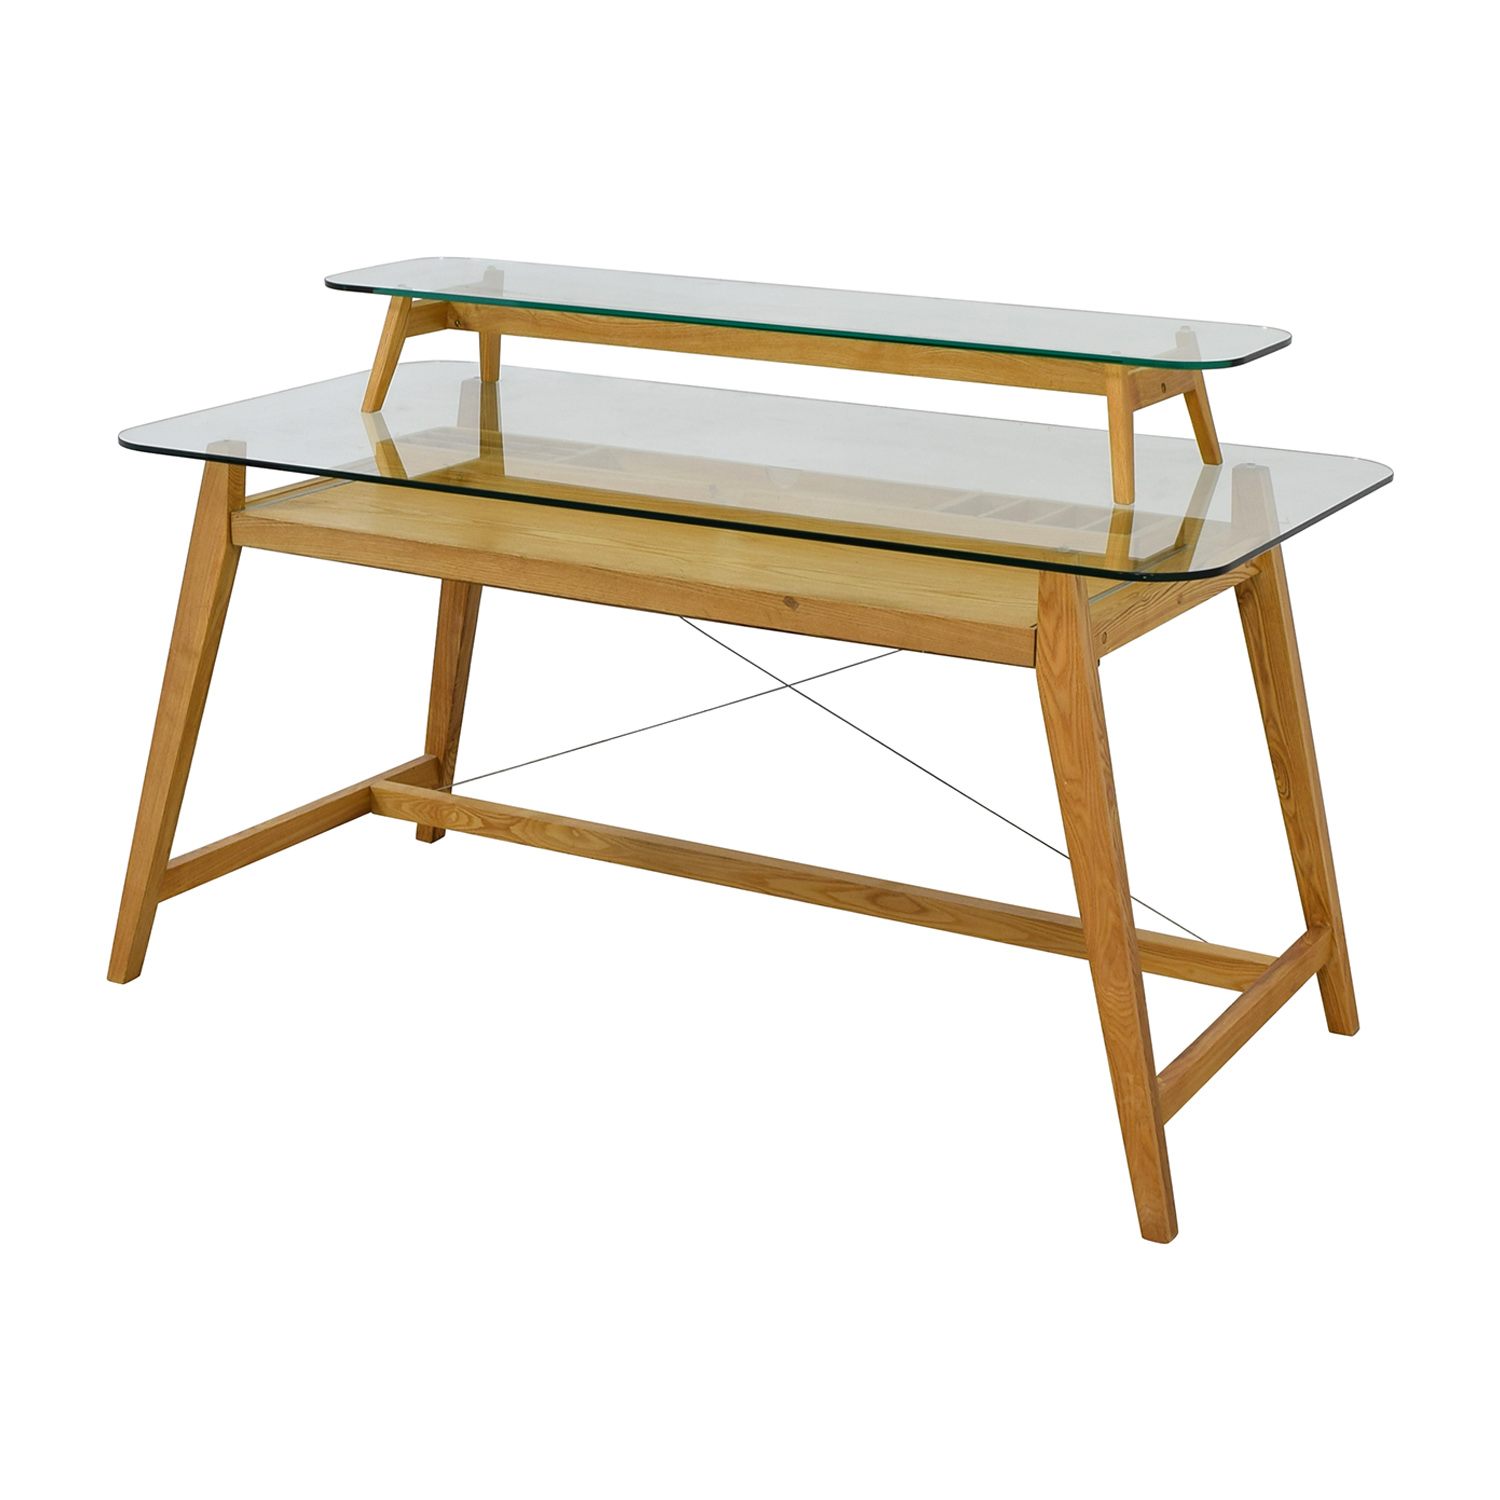 buy AG Merch Natural Two-Tiered Desk with Glass Top AG Merch